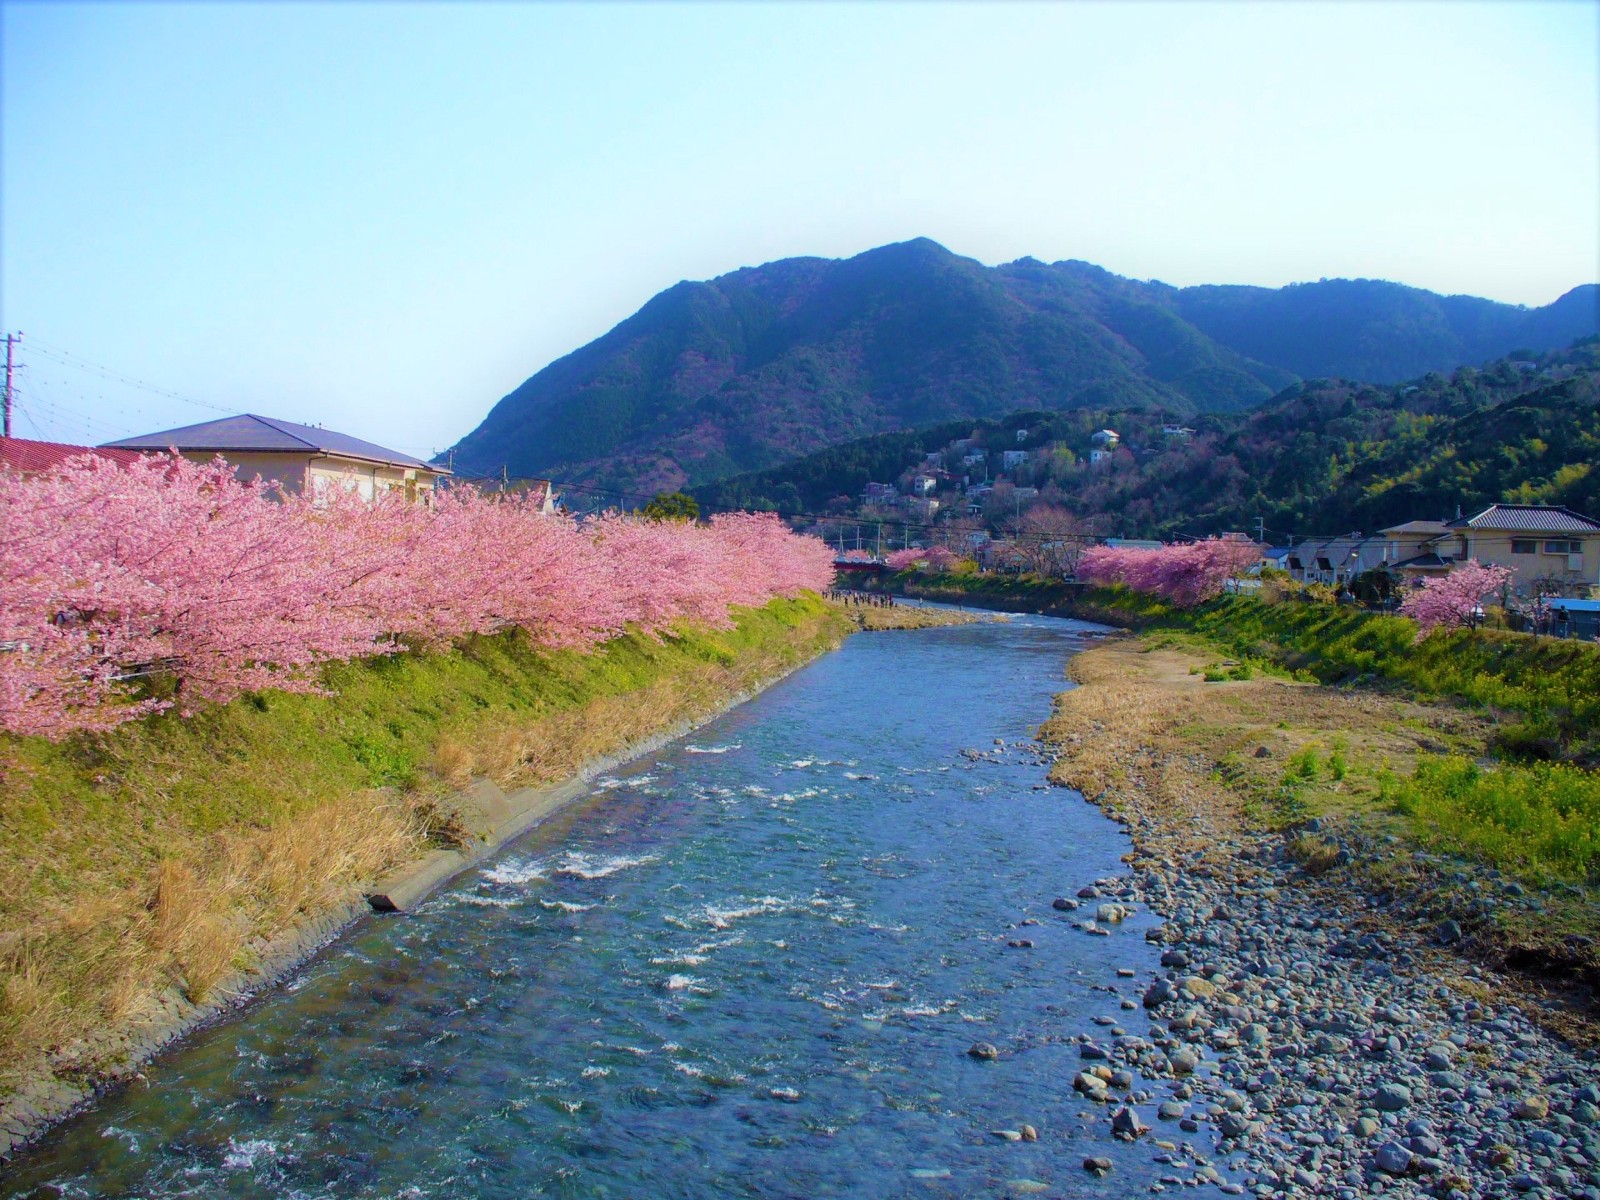 Kawazu Sakura: the early blooming cherry blossoms in Izu